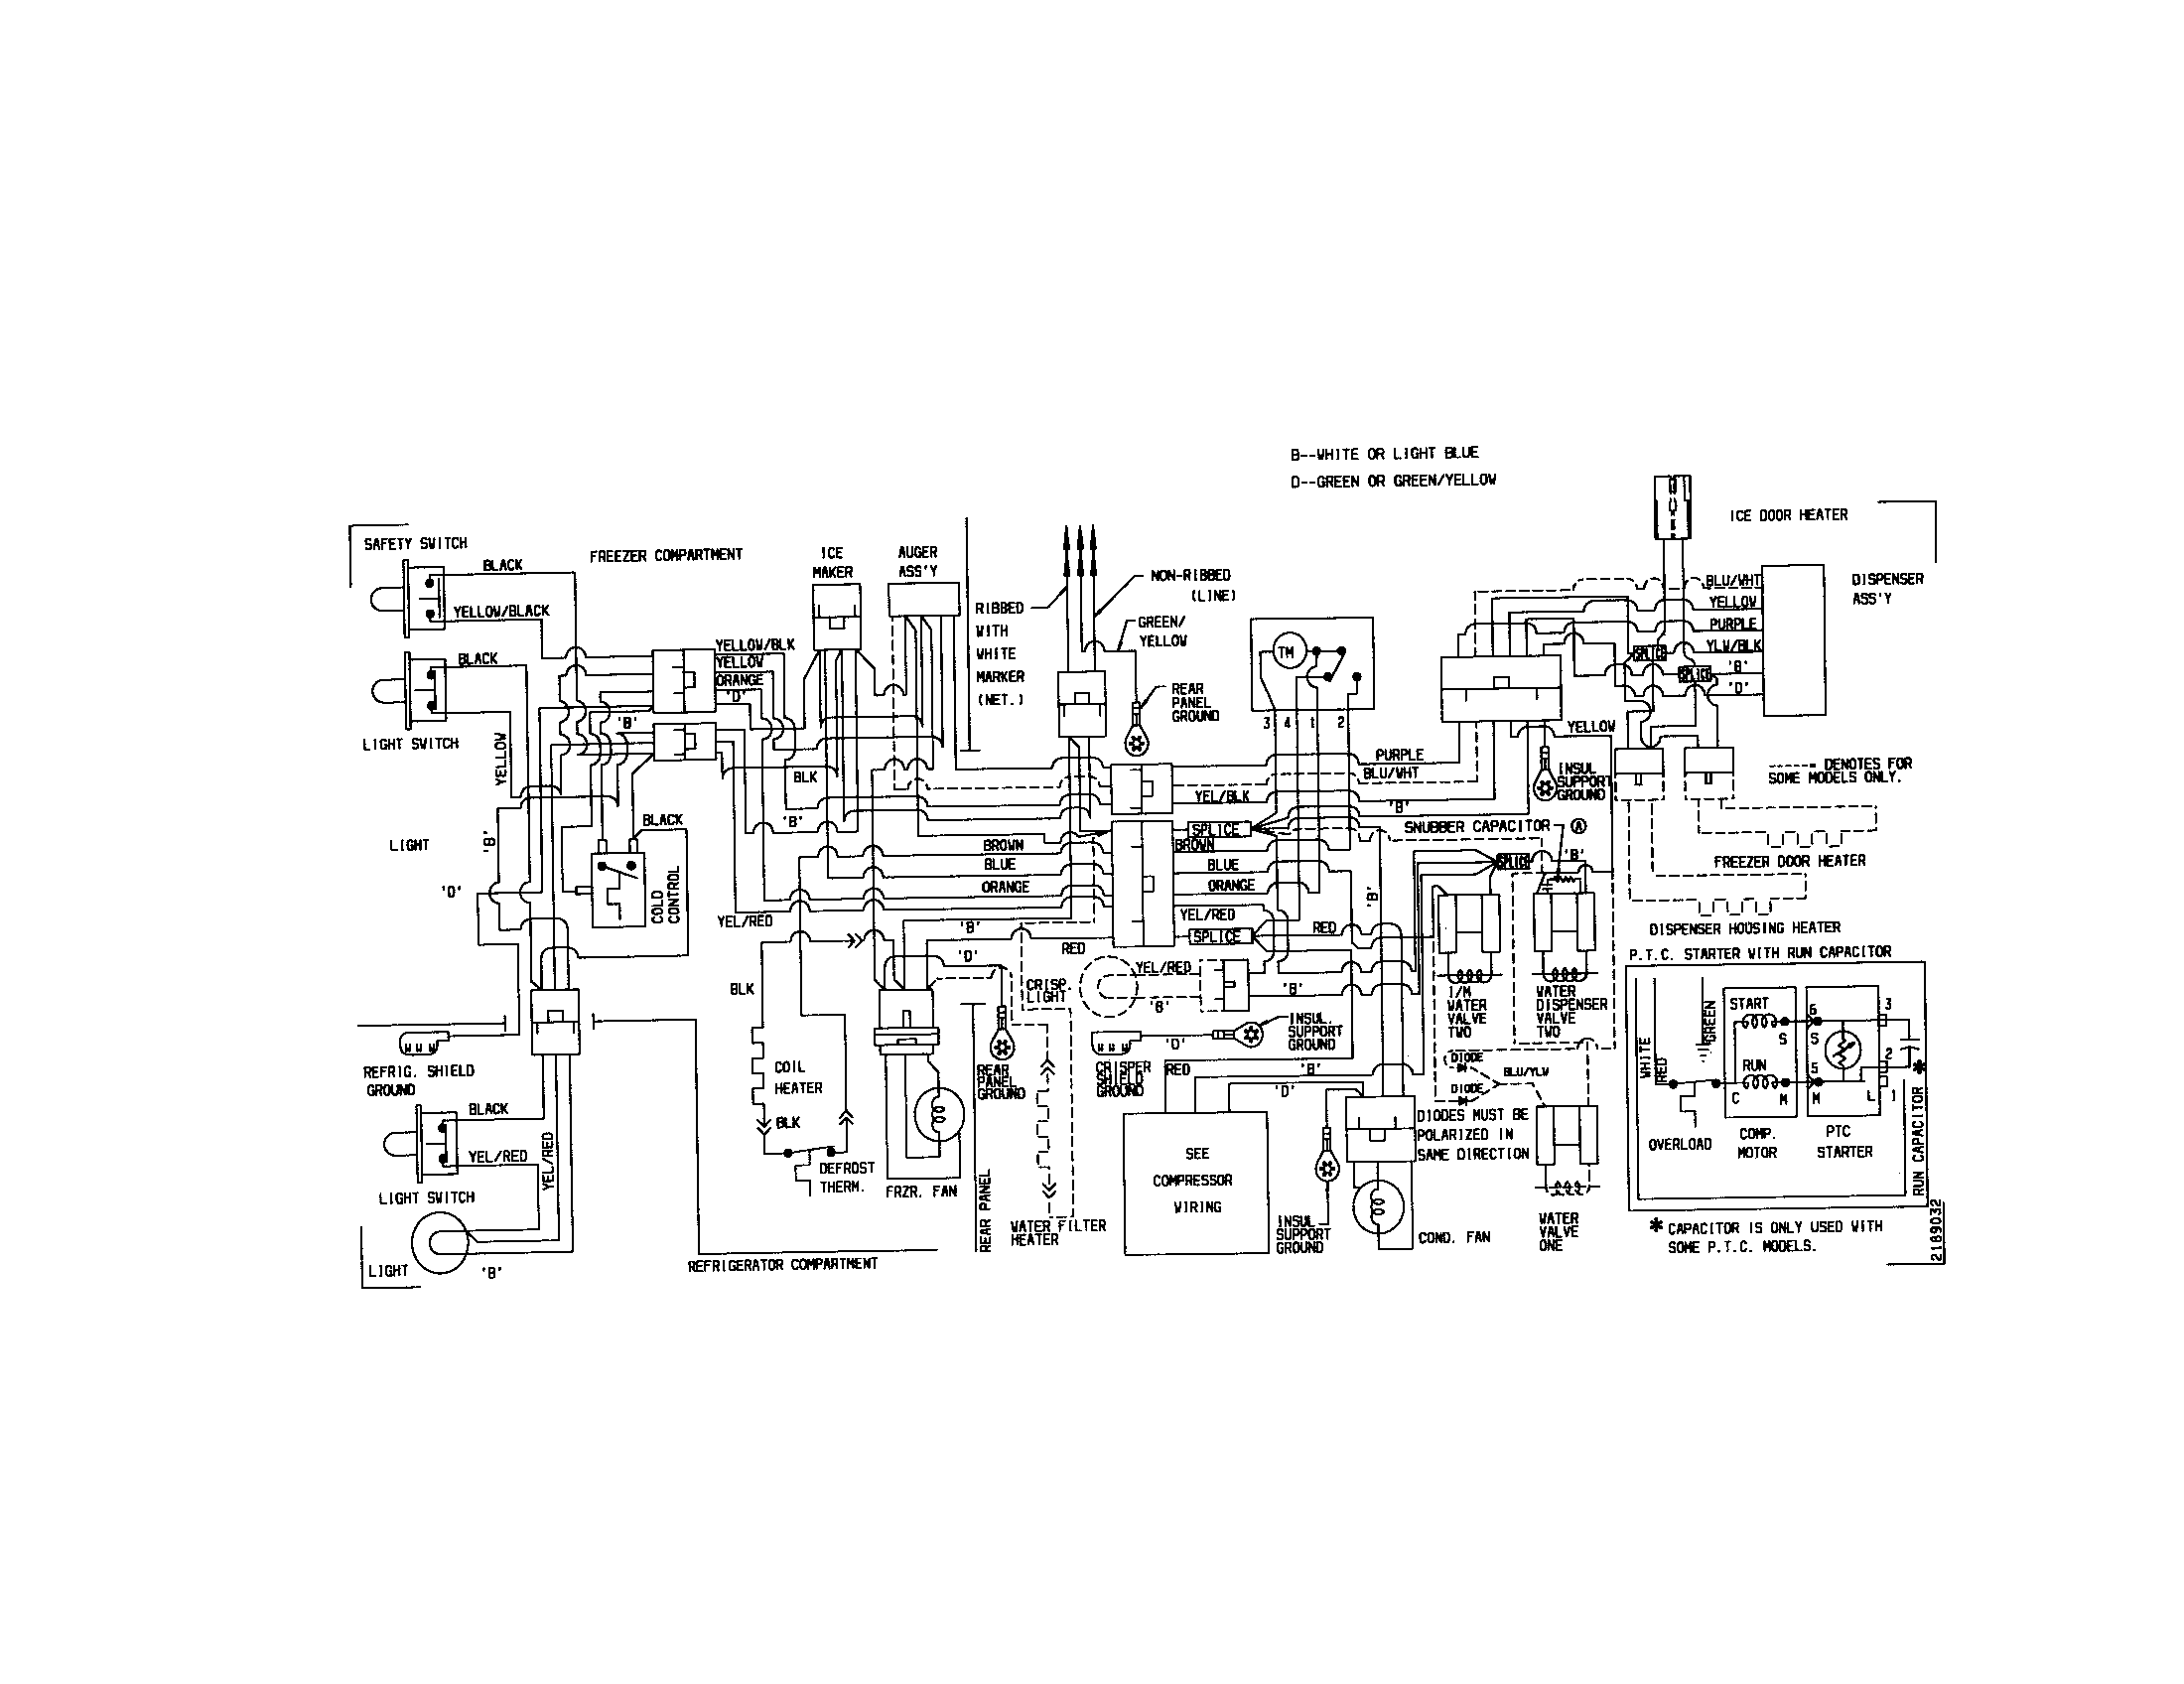 what is: wiring diagram for Kenmore refrigerator 363.59572990